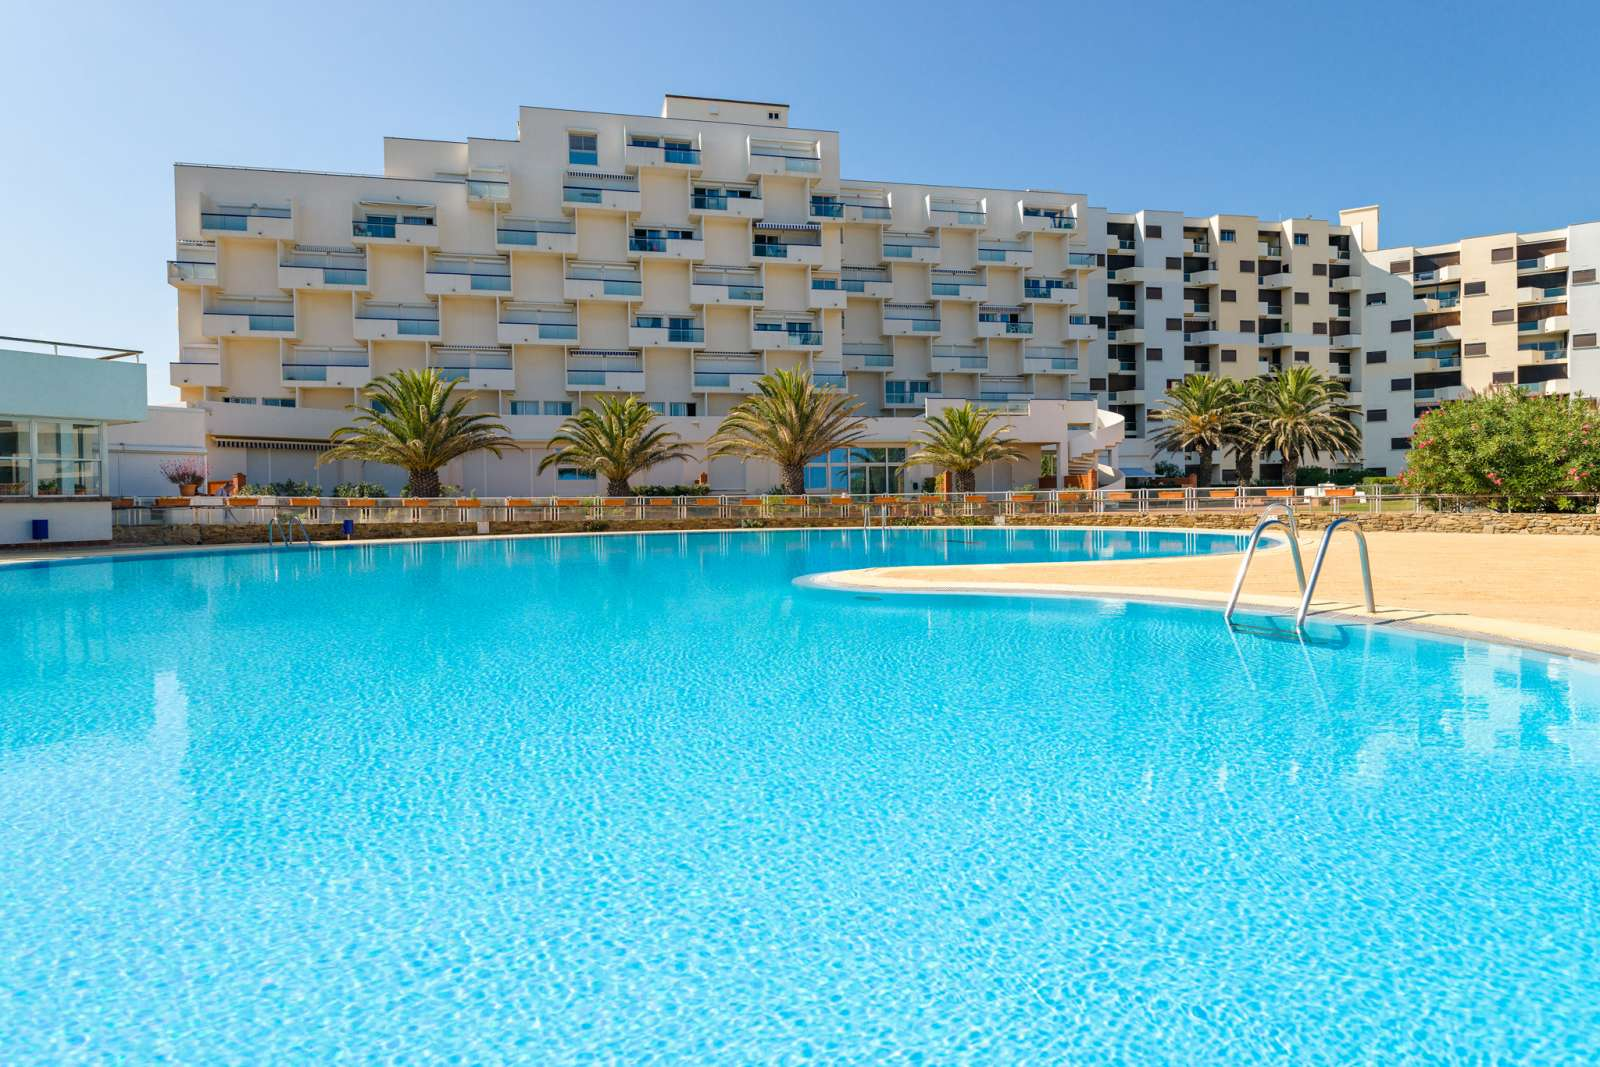 R sidence le lydia playa grande plage location vacances le barcares cap coudalere lagrange - Residence catalana port barcares ...